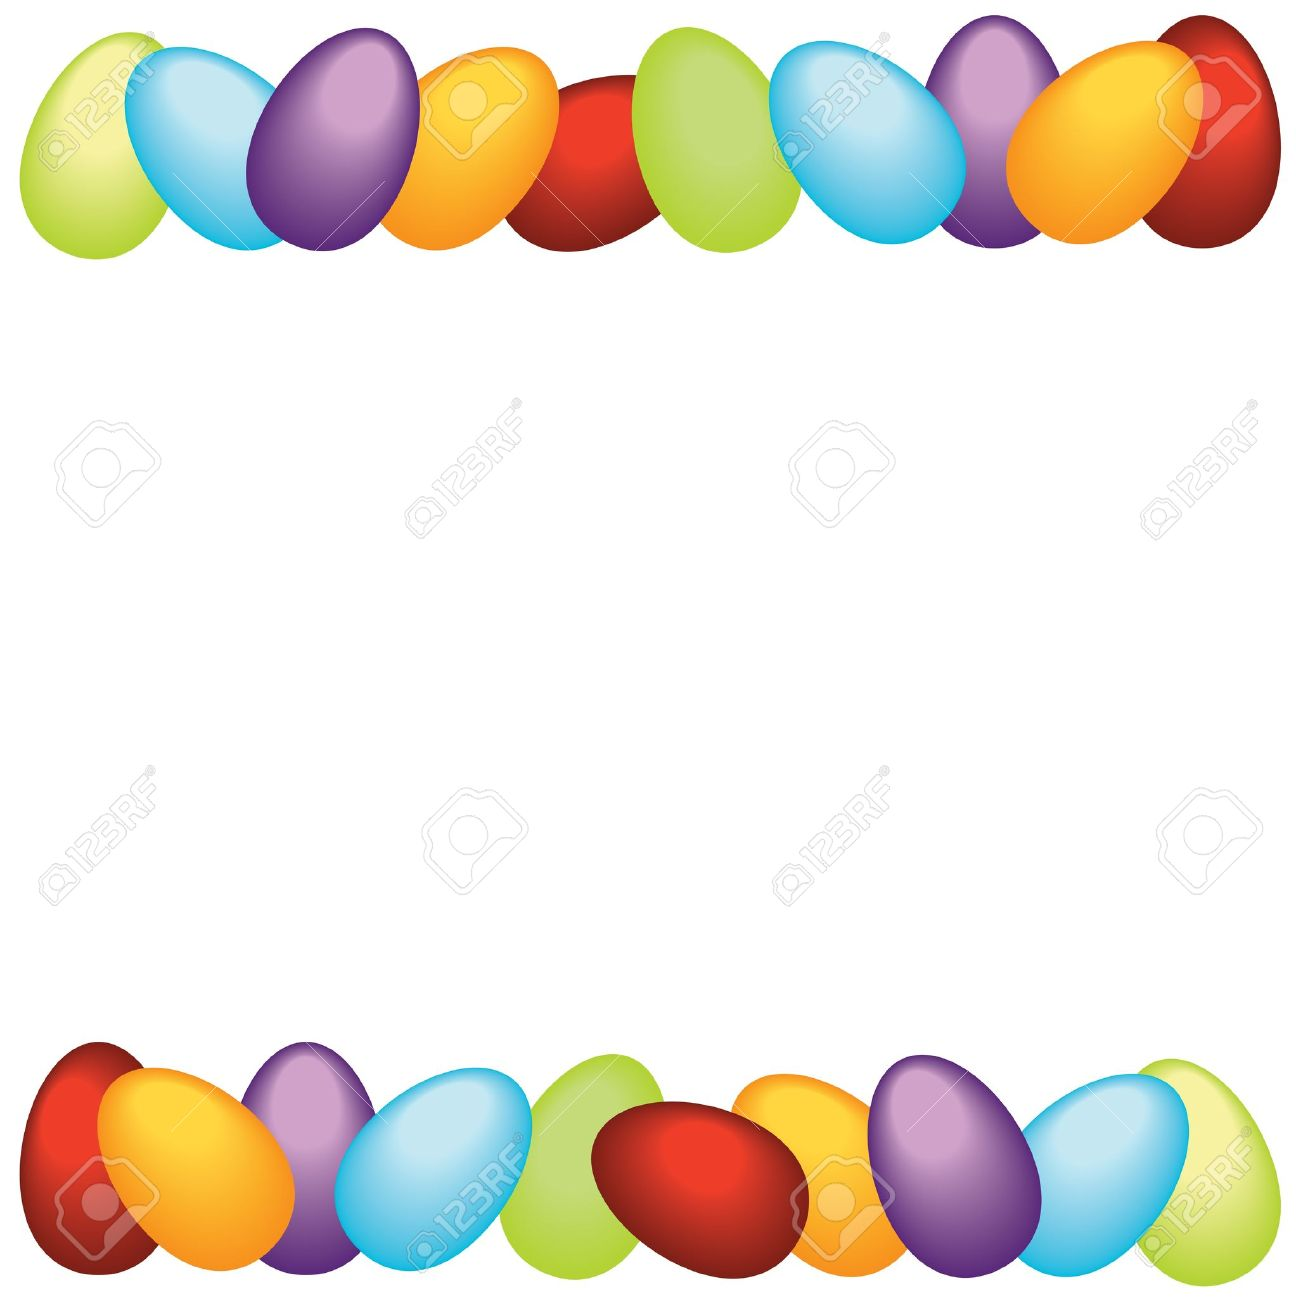 Easter Border Clipart Free.